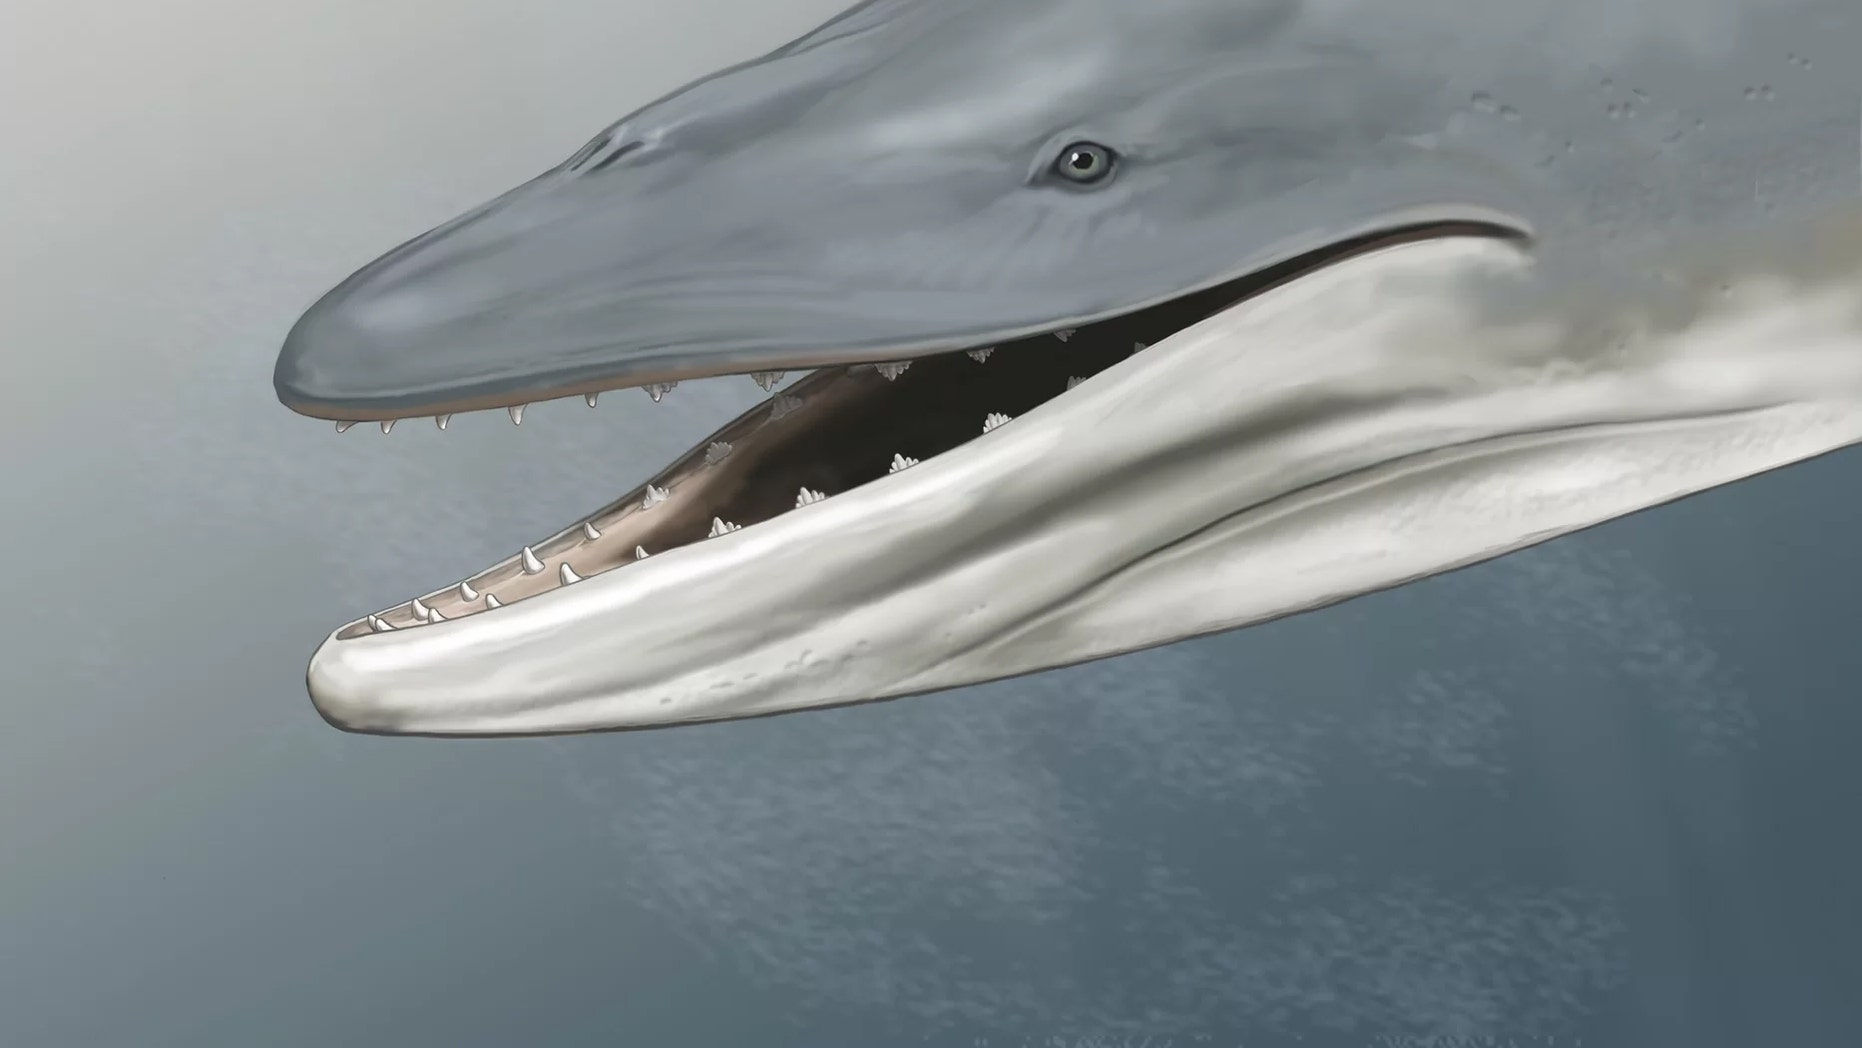 This is an artist's reconstruction of Llanocetus denticrenatus, an ancient whale with teeth. Credit: Carl Buell